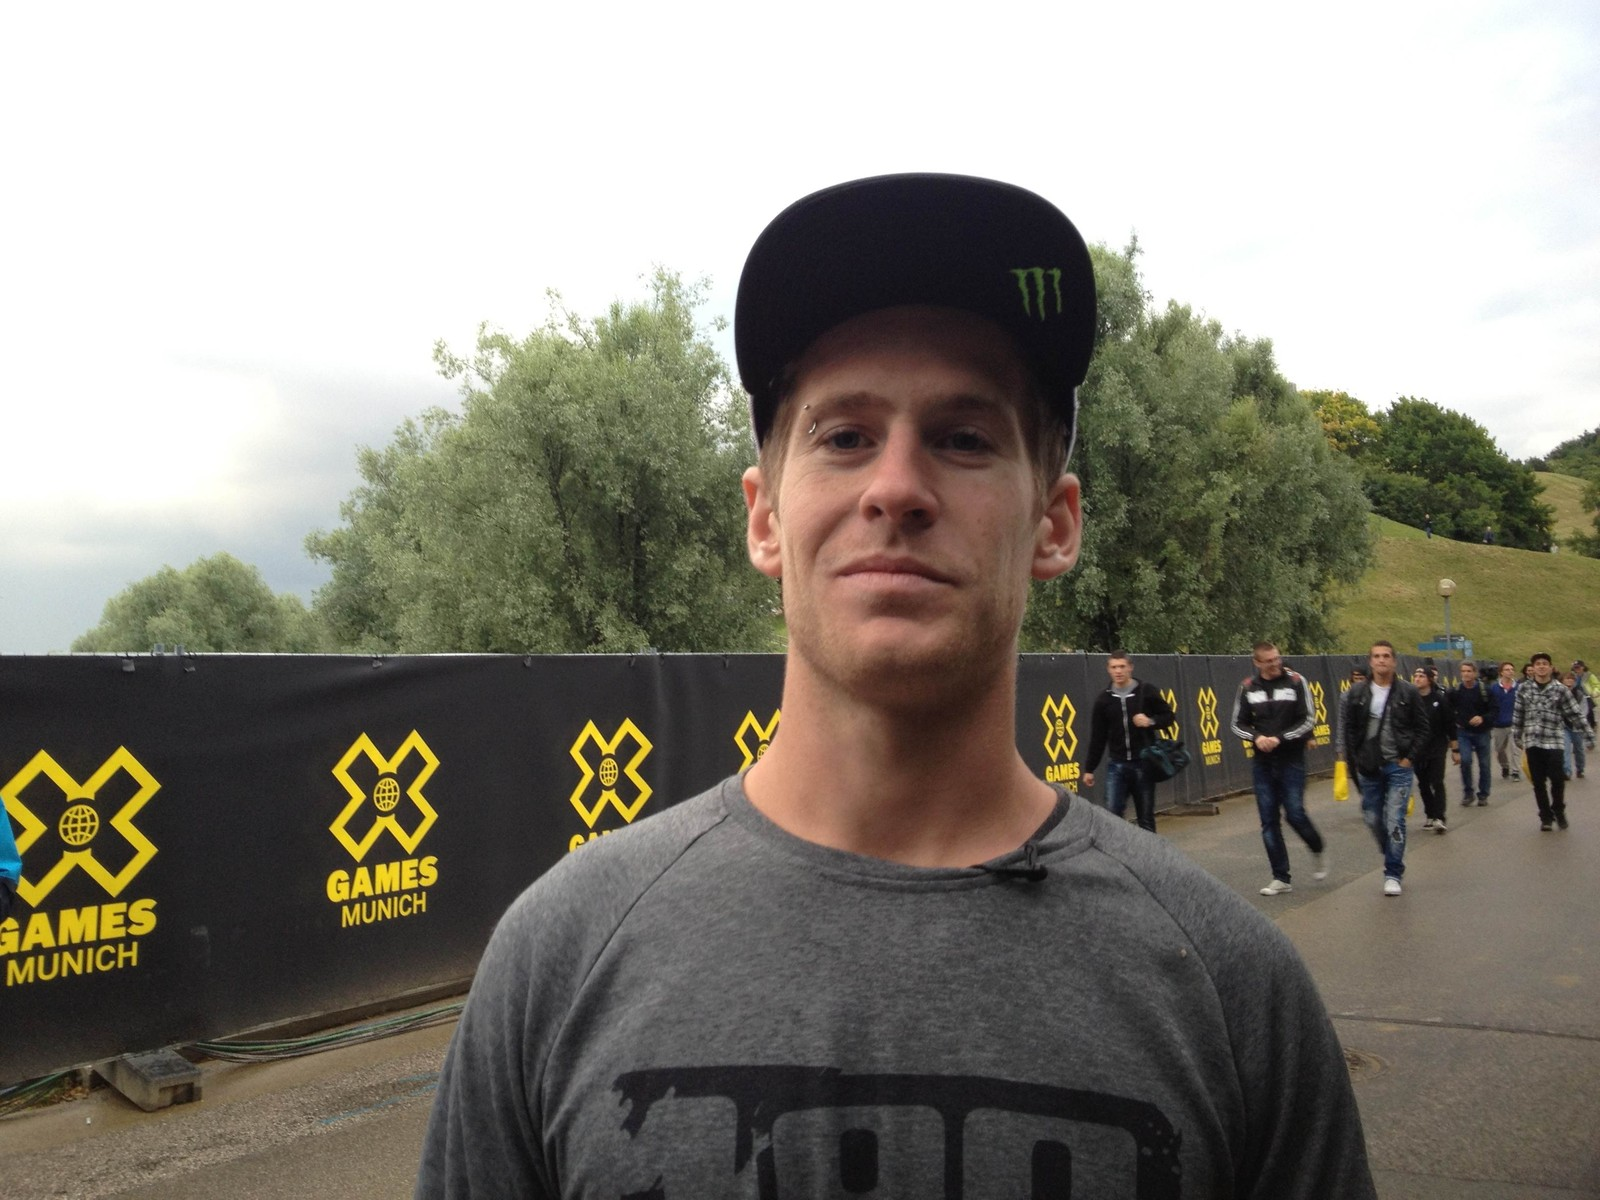 Sam Pilgrim Talks About 2013 X Games MTB Slopestyle - All Things X-Games Munich Slopestyle - Mountain Biking Pictures - Vital MTB